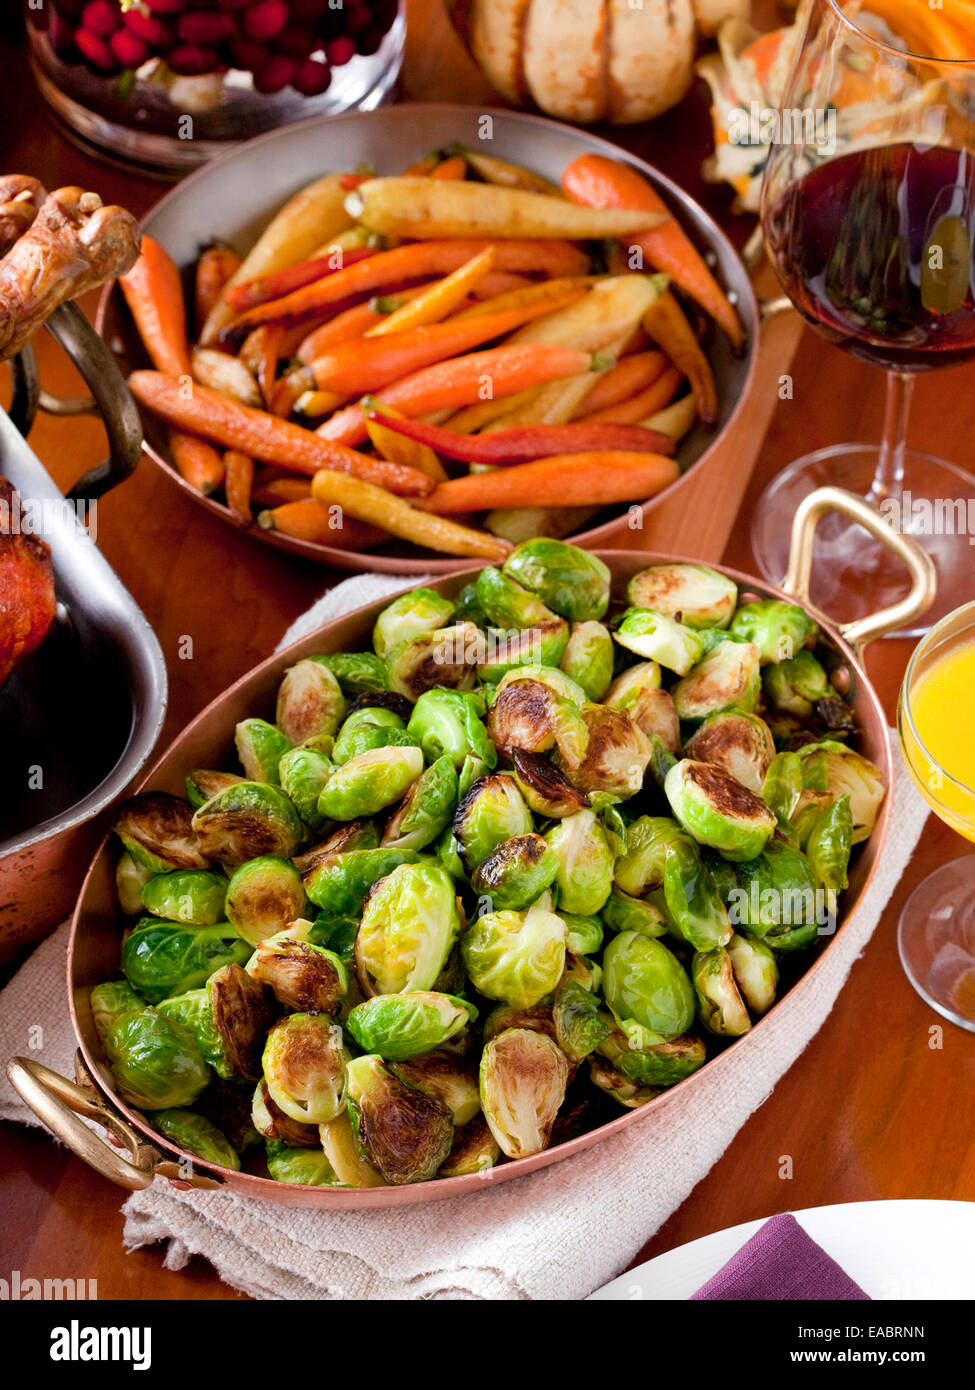 Brussels Sprouts cooked carrots thanksgiving meal holiday family wine table dinner - Stock Image